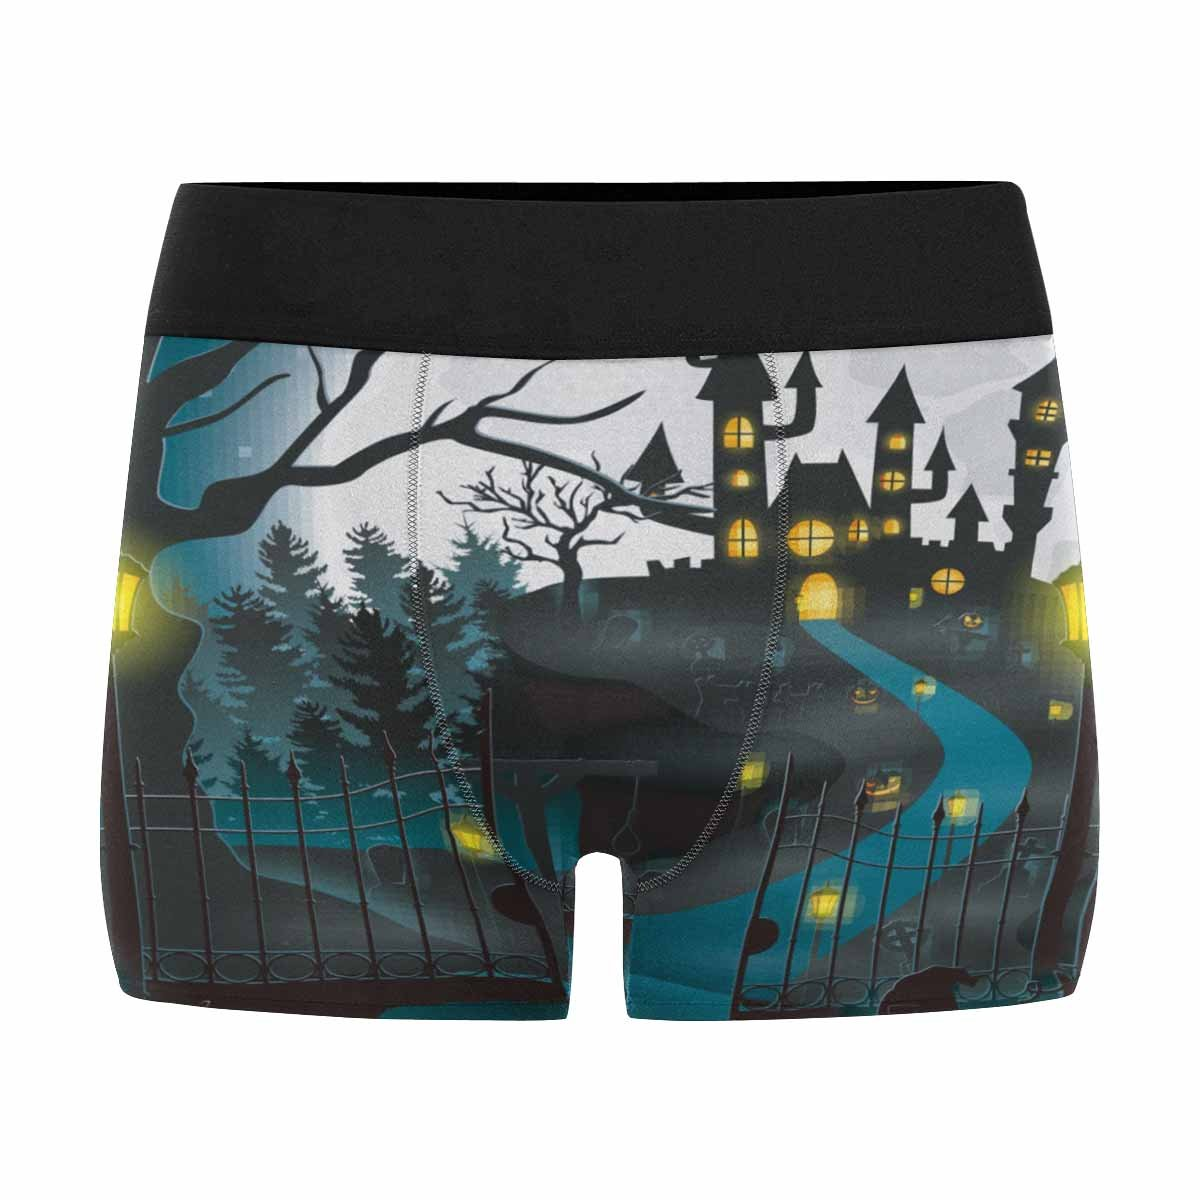 INTERESTPRINT Custom Mens All-Over Print Boxer Briefs Cartoon Halloween Background with Castle and Pumpkin XS-3XL